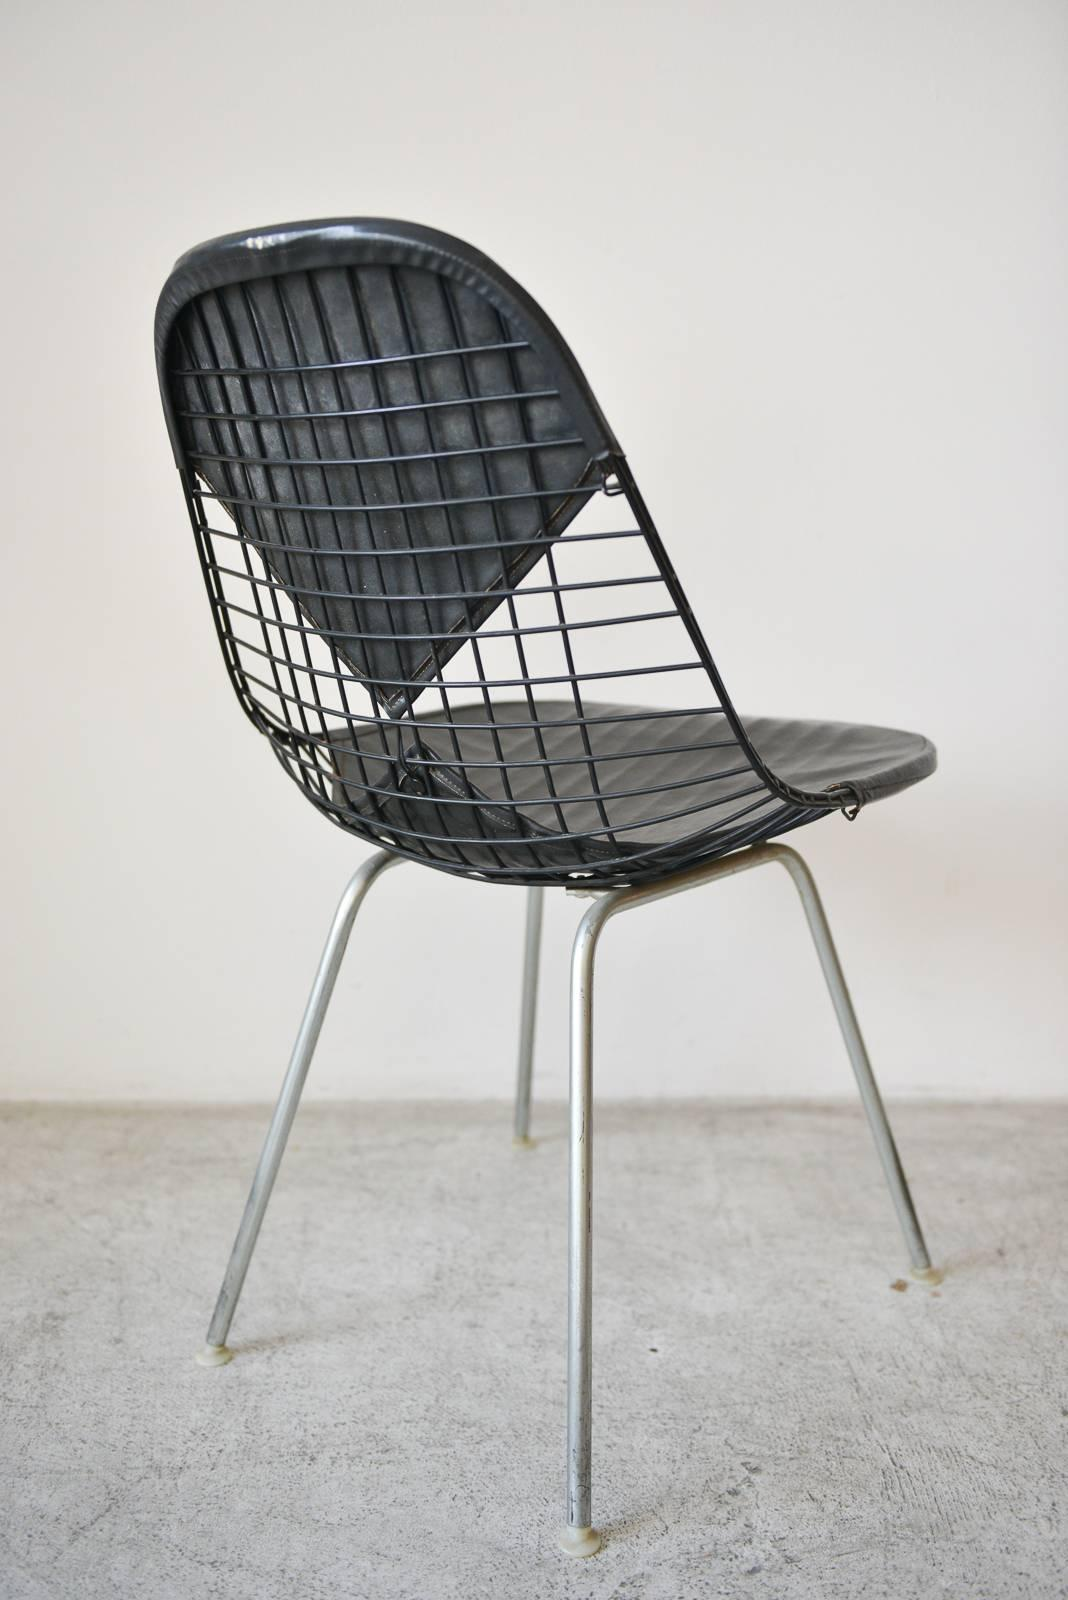 Eames Wire Chair Eames Dkx 2 Vintage Wire Chair With Leather Bikini Cover